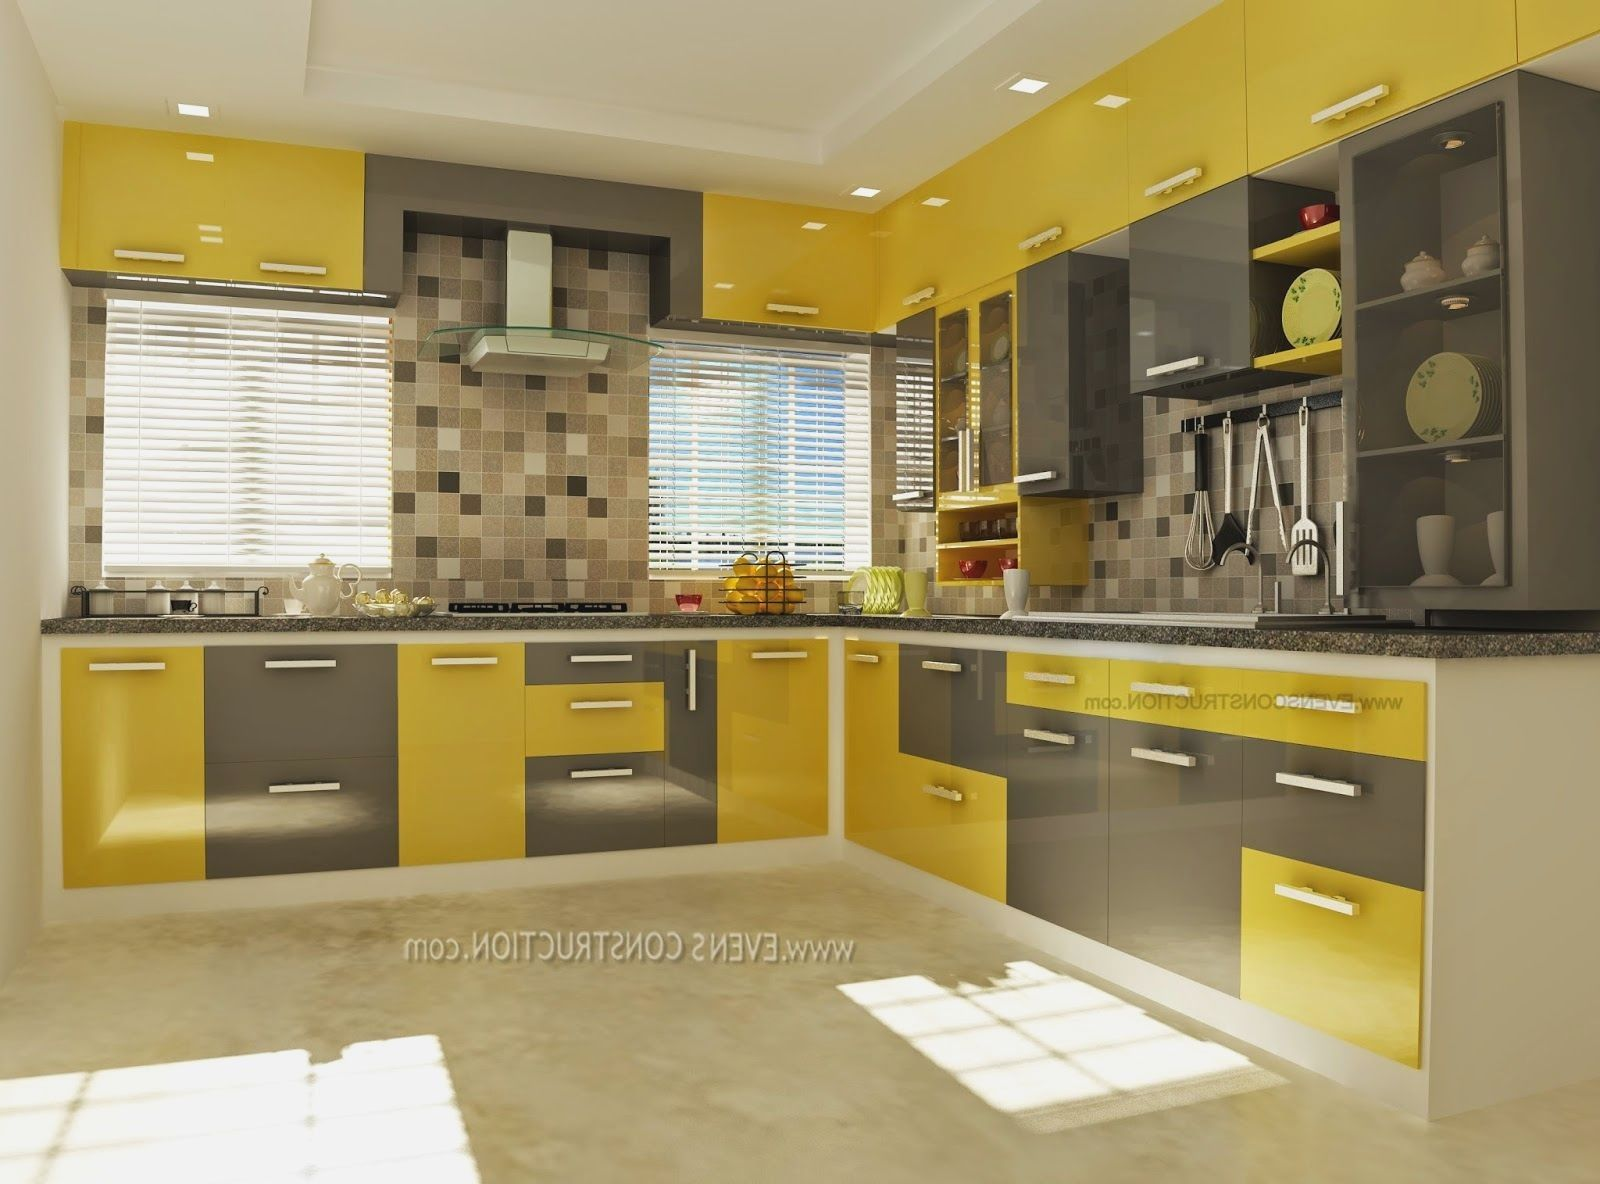 Home Decor Kitchen Cupboard Designs Kitchen Cabinets Color Combination Kitchen Design Color